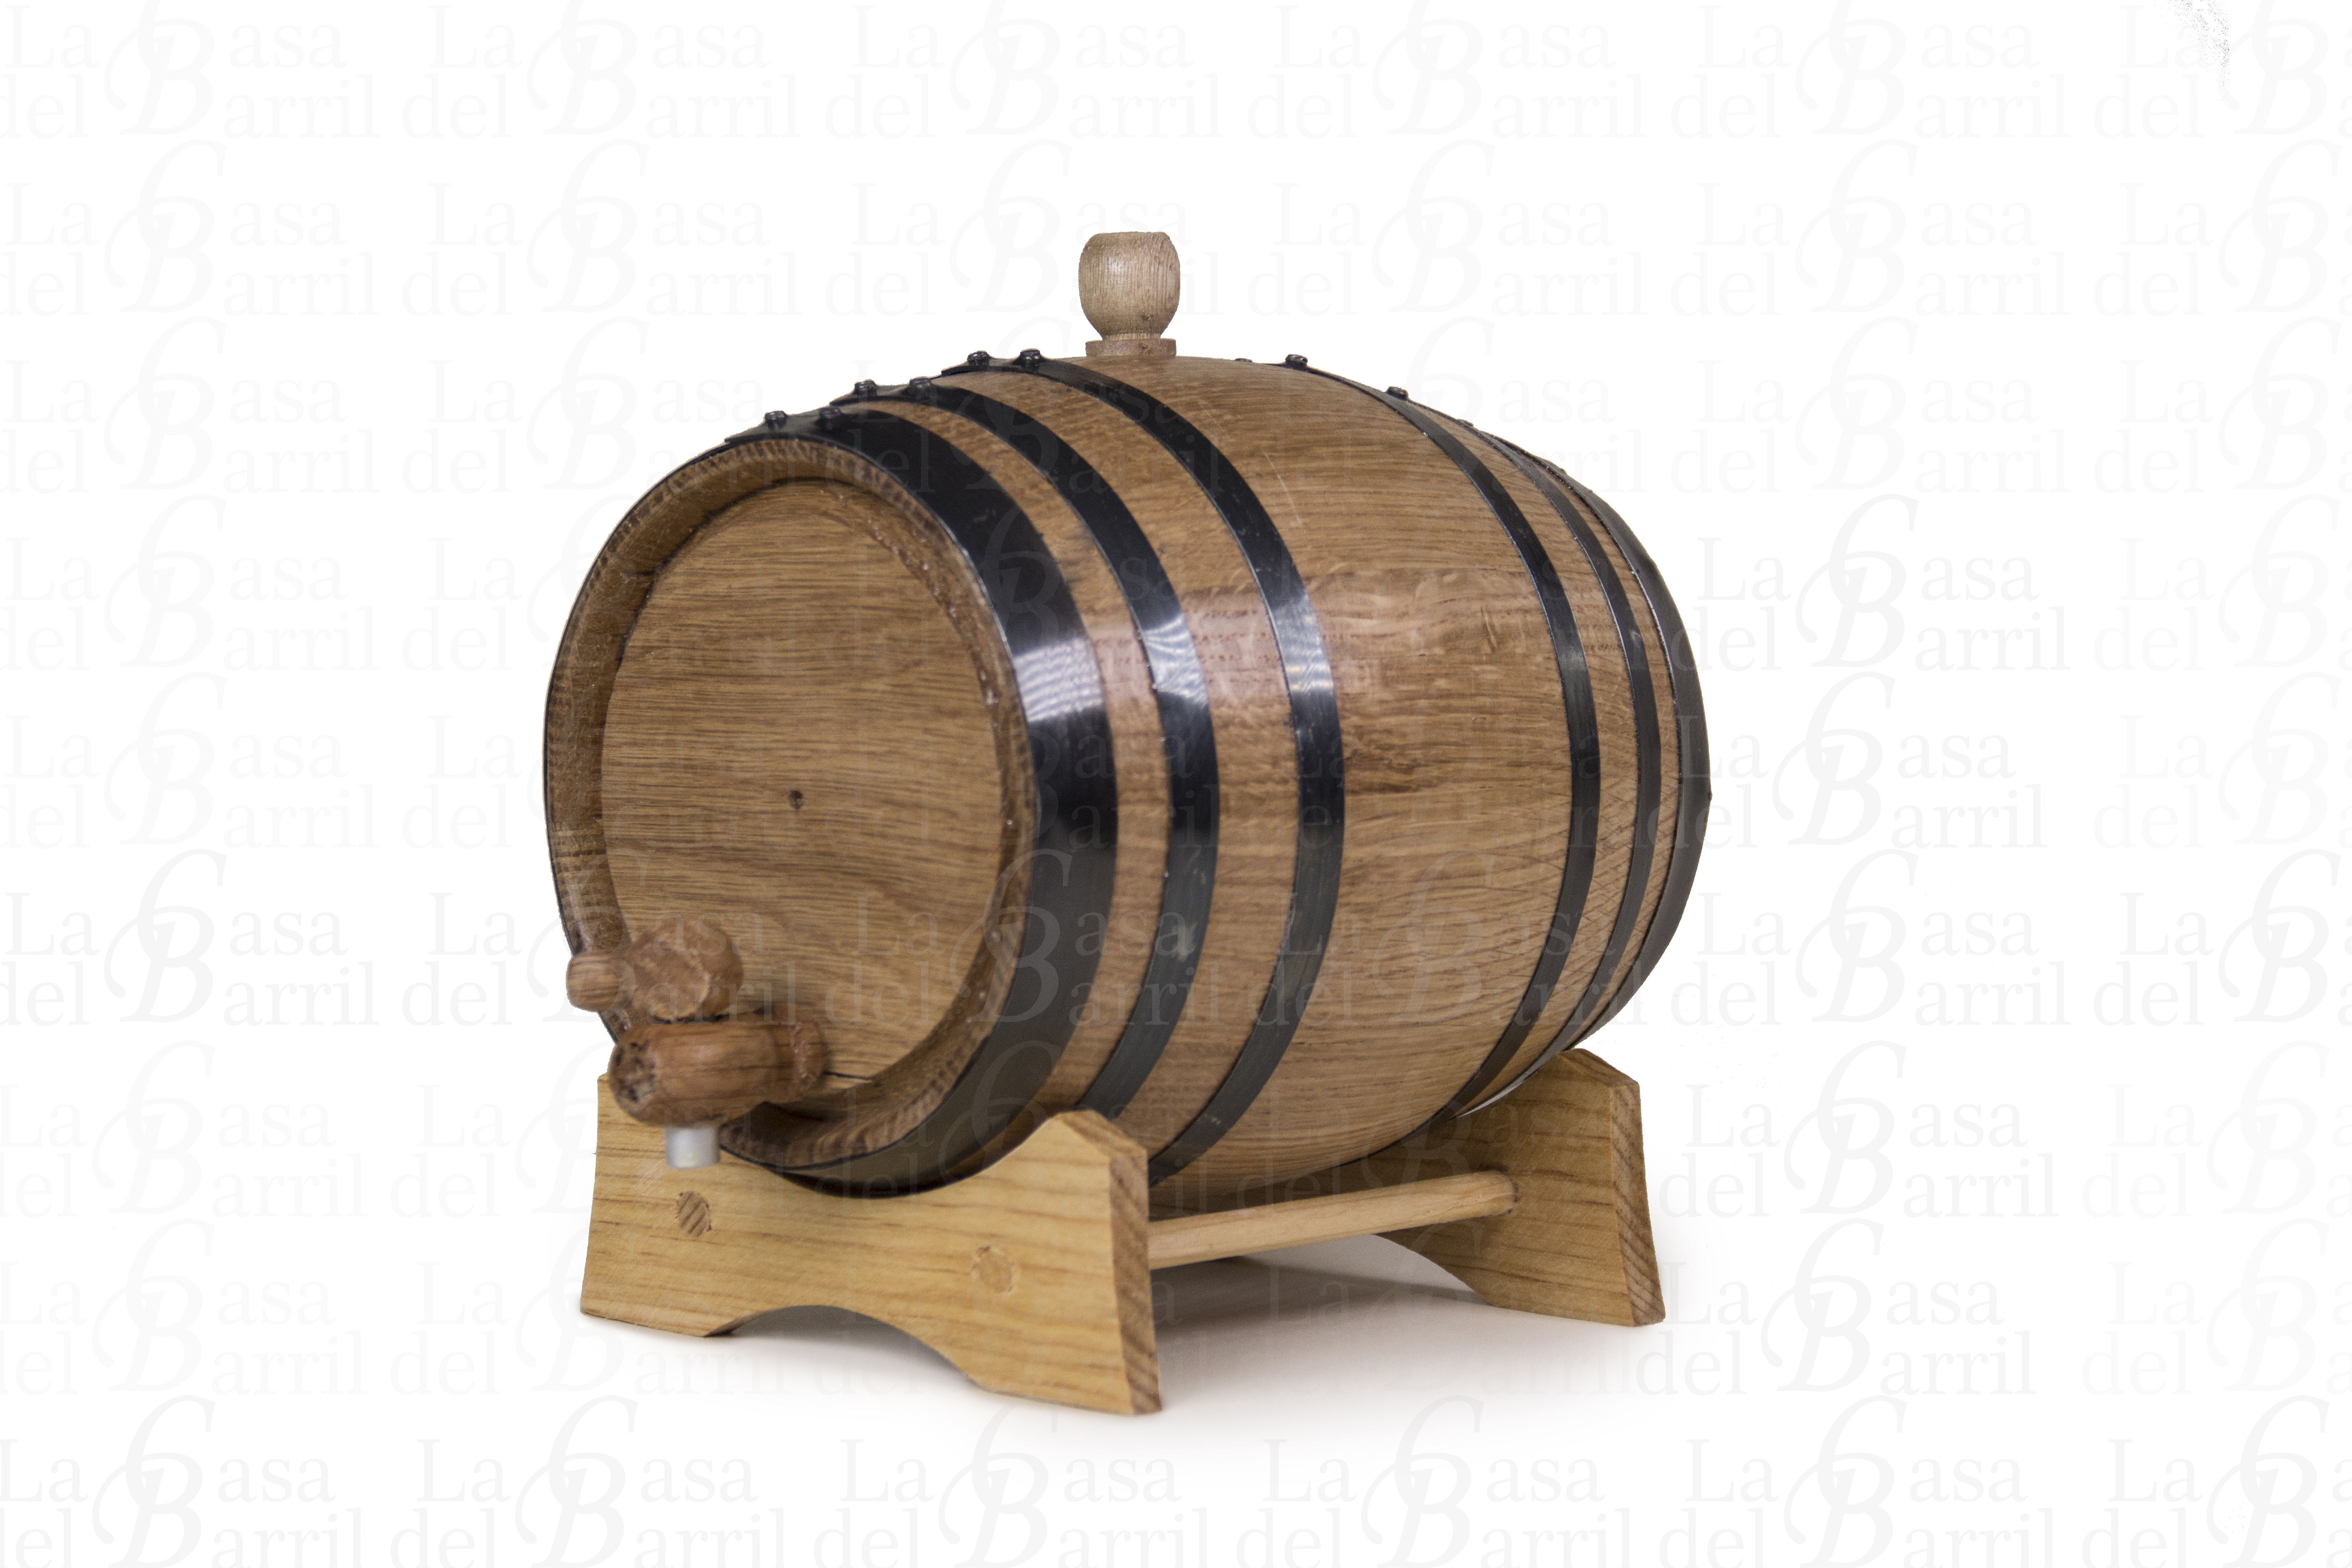 Handmade white oak barrel 2 liter , to age whiskey, tequila, ron, beer, wine